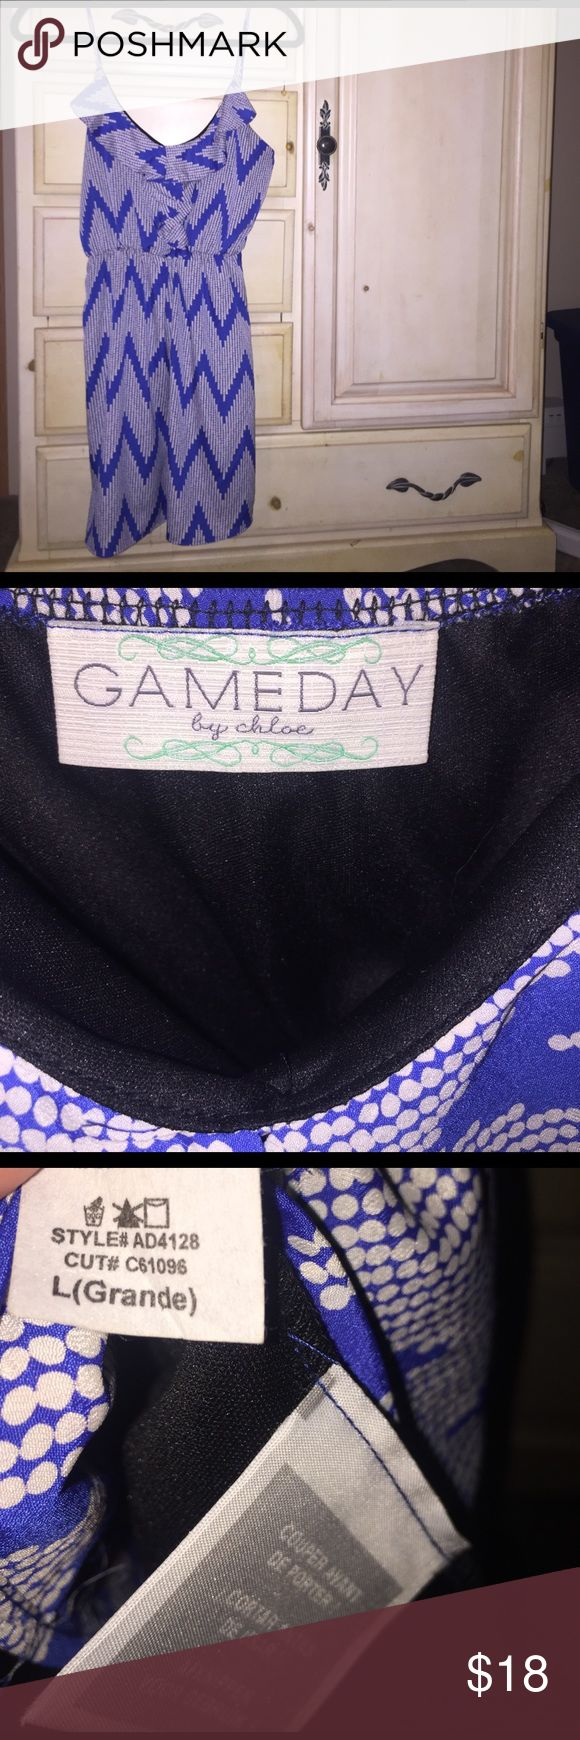 Gameday by Chole blue chevron dress size L Gameday by Chole blue and white chevron patterned dress size L. Gently worn Gameday by Chloe Dresses